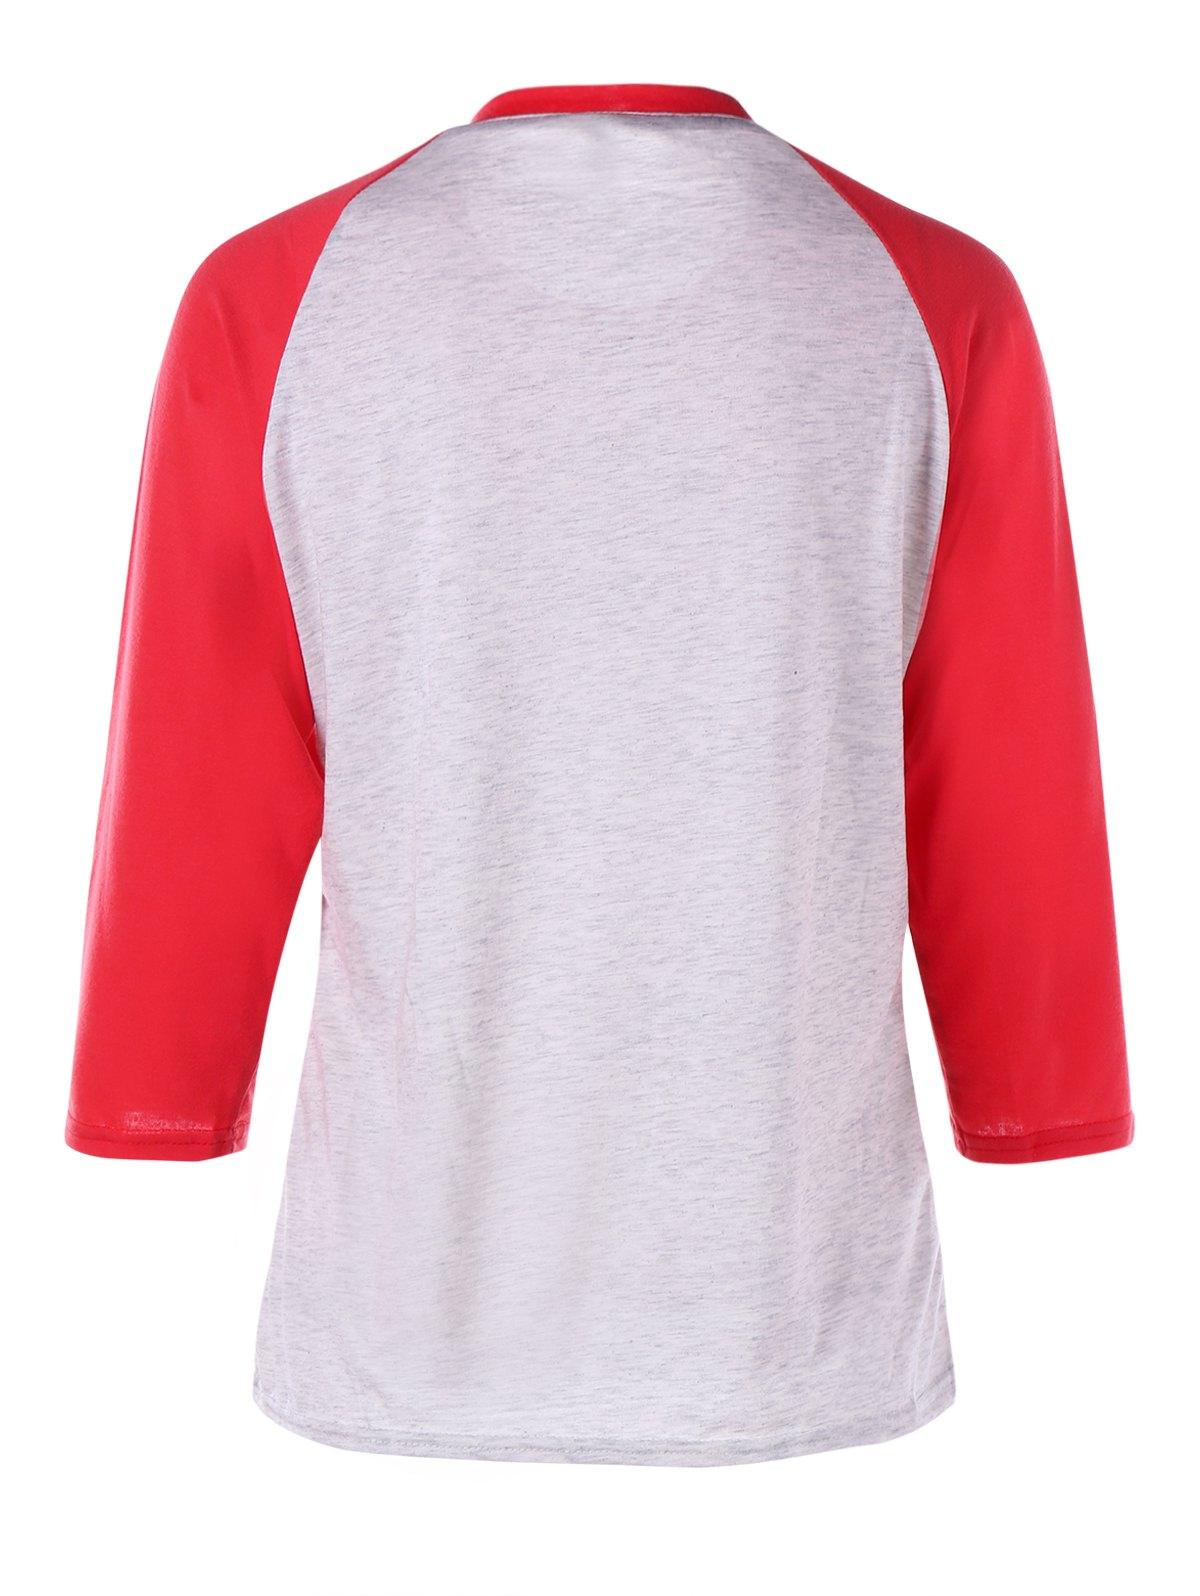 Christmas Jingle Belly Print Raglan Sleeve Tee - RED 2XL